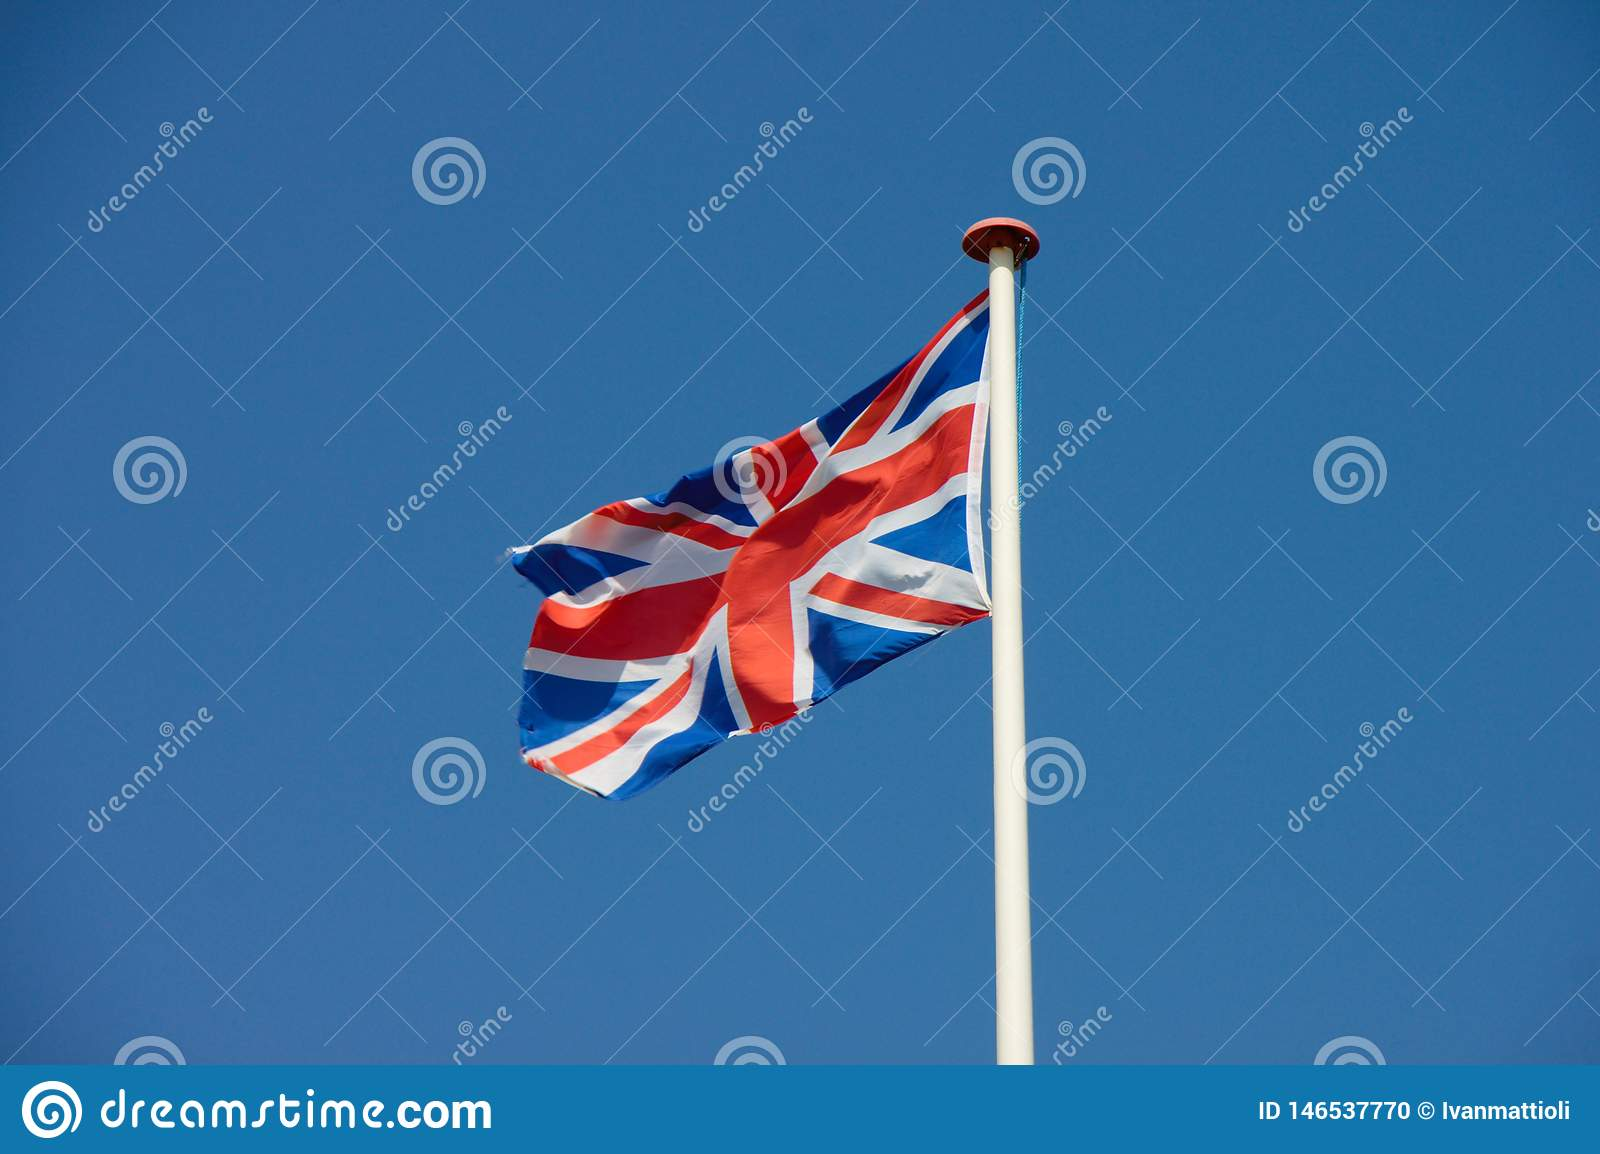 Union Jack, UK flag flapping in the wind